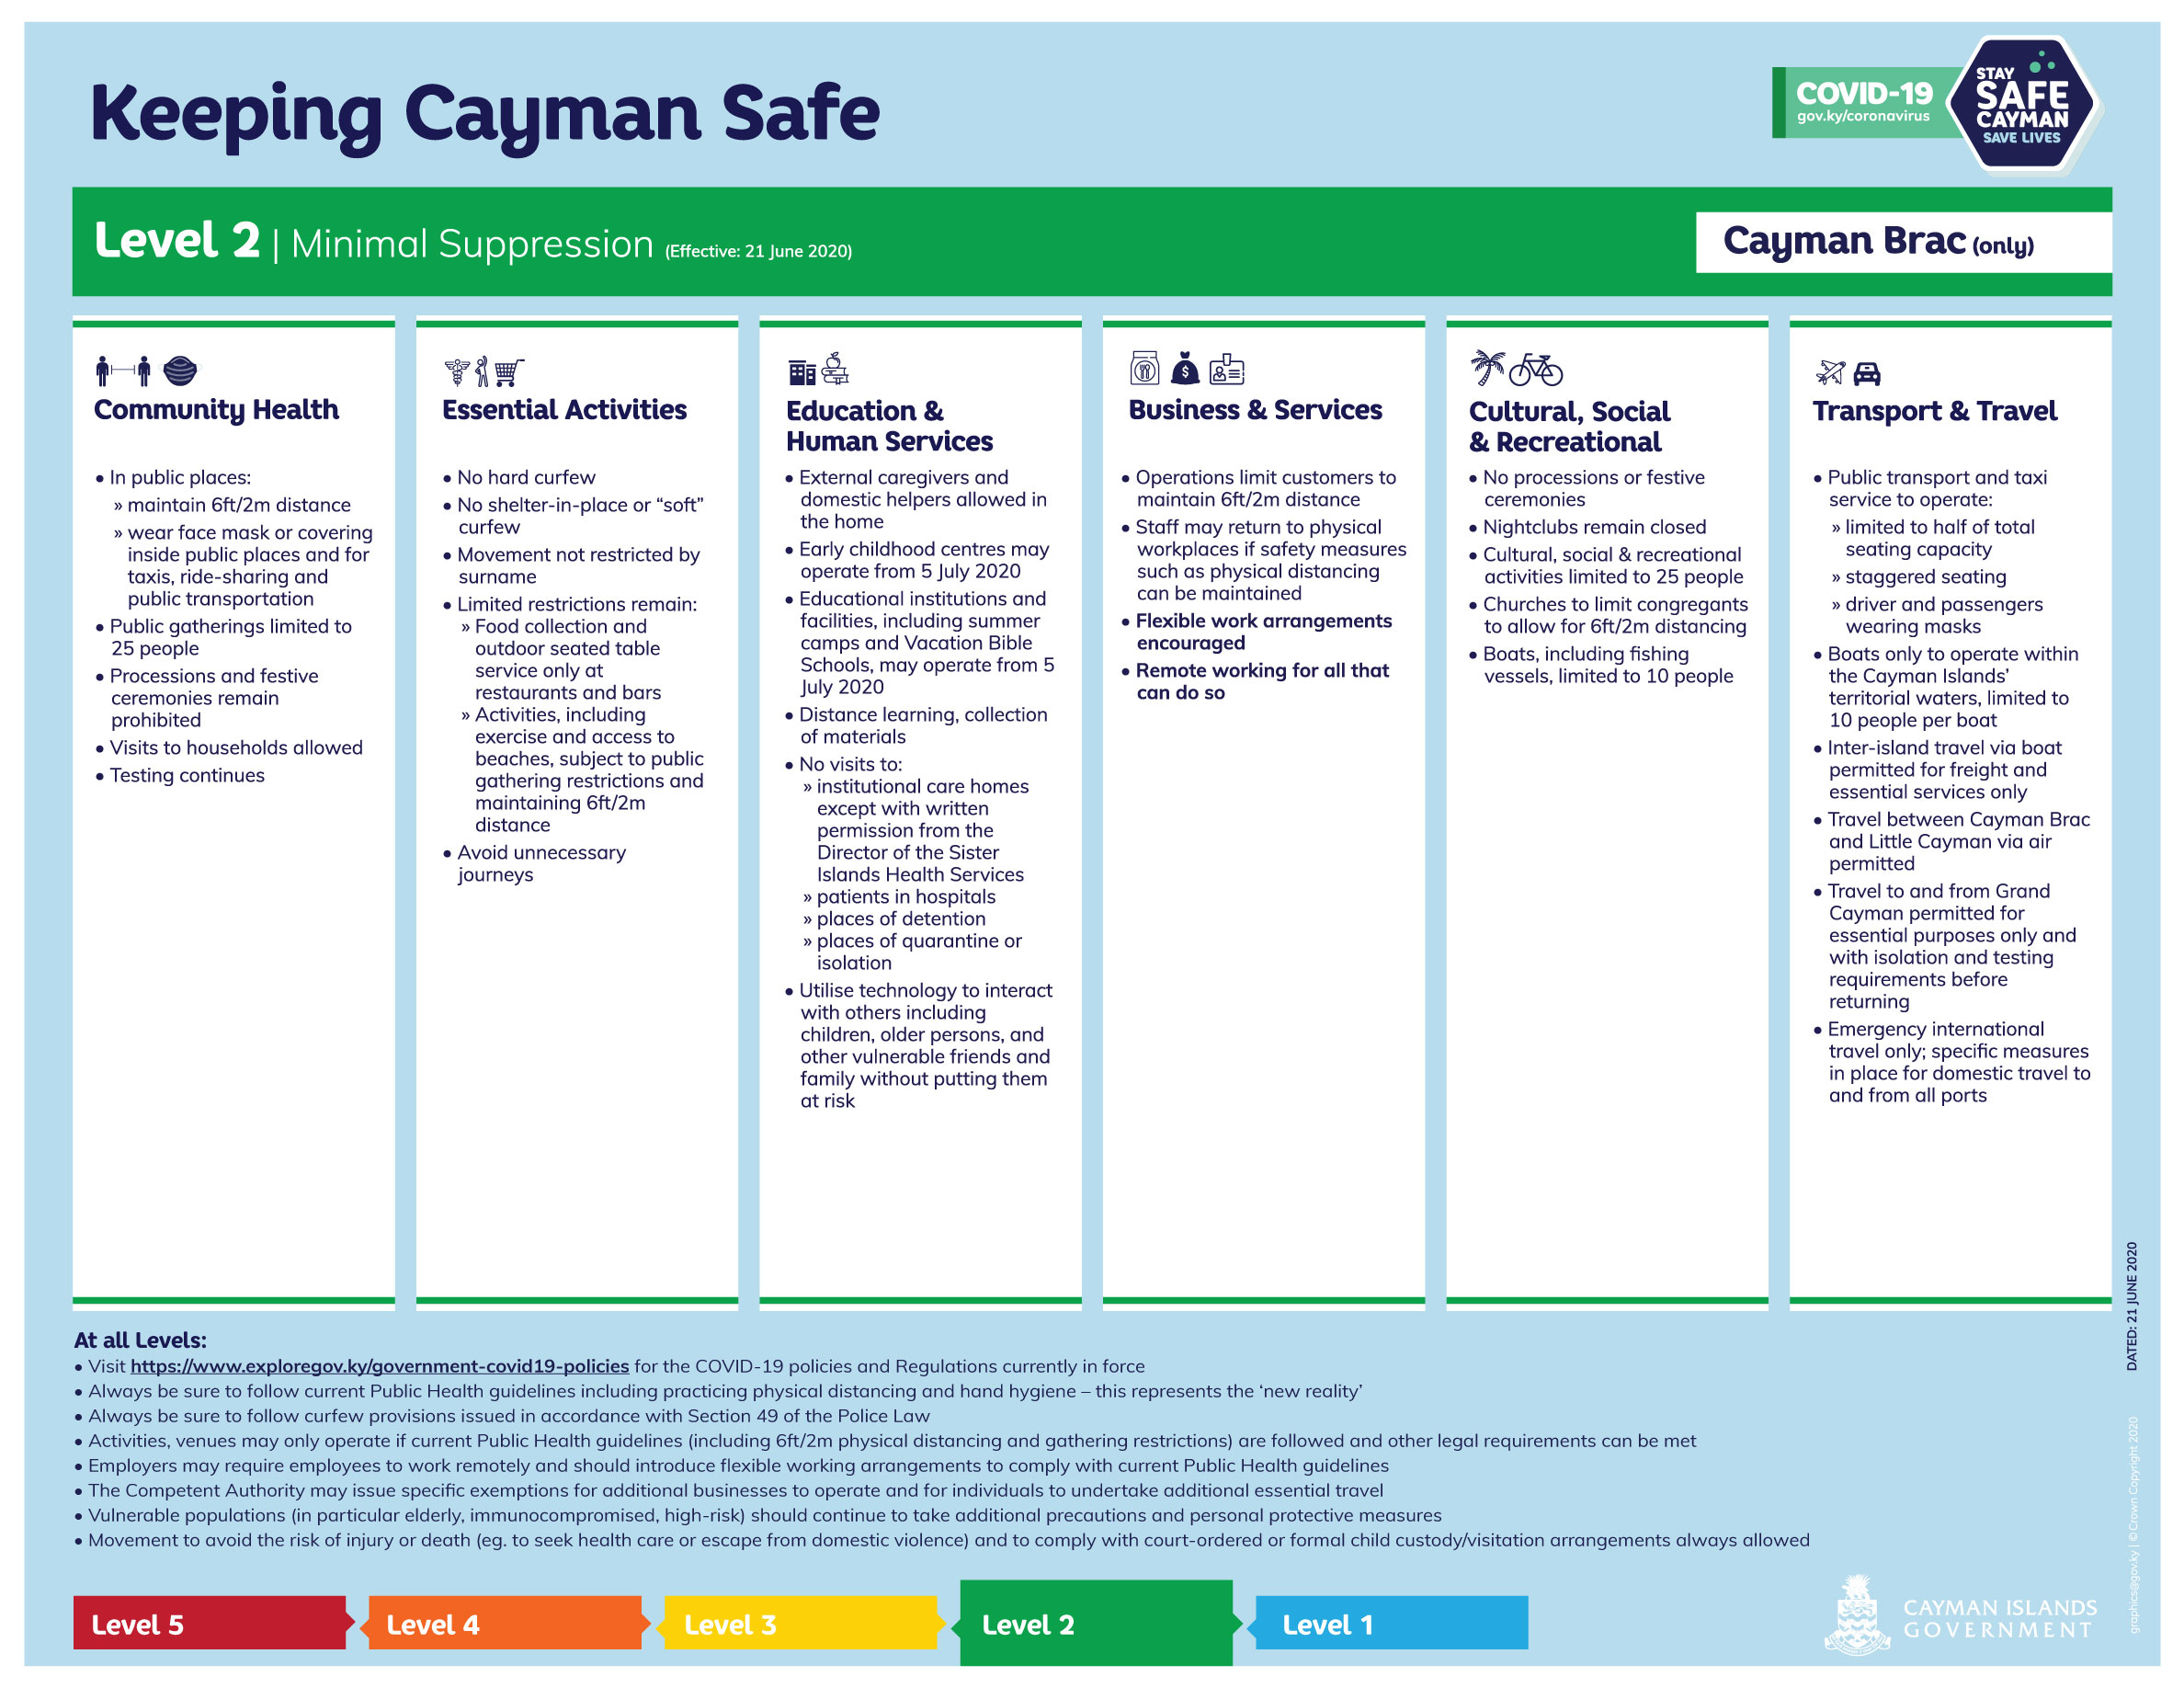 Keeping Cayman Safe - COVID-19 Suppression Level 2 - Cayman Brac only (Effective 21 June 2020)